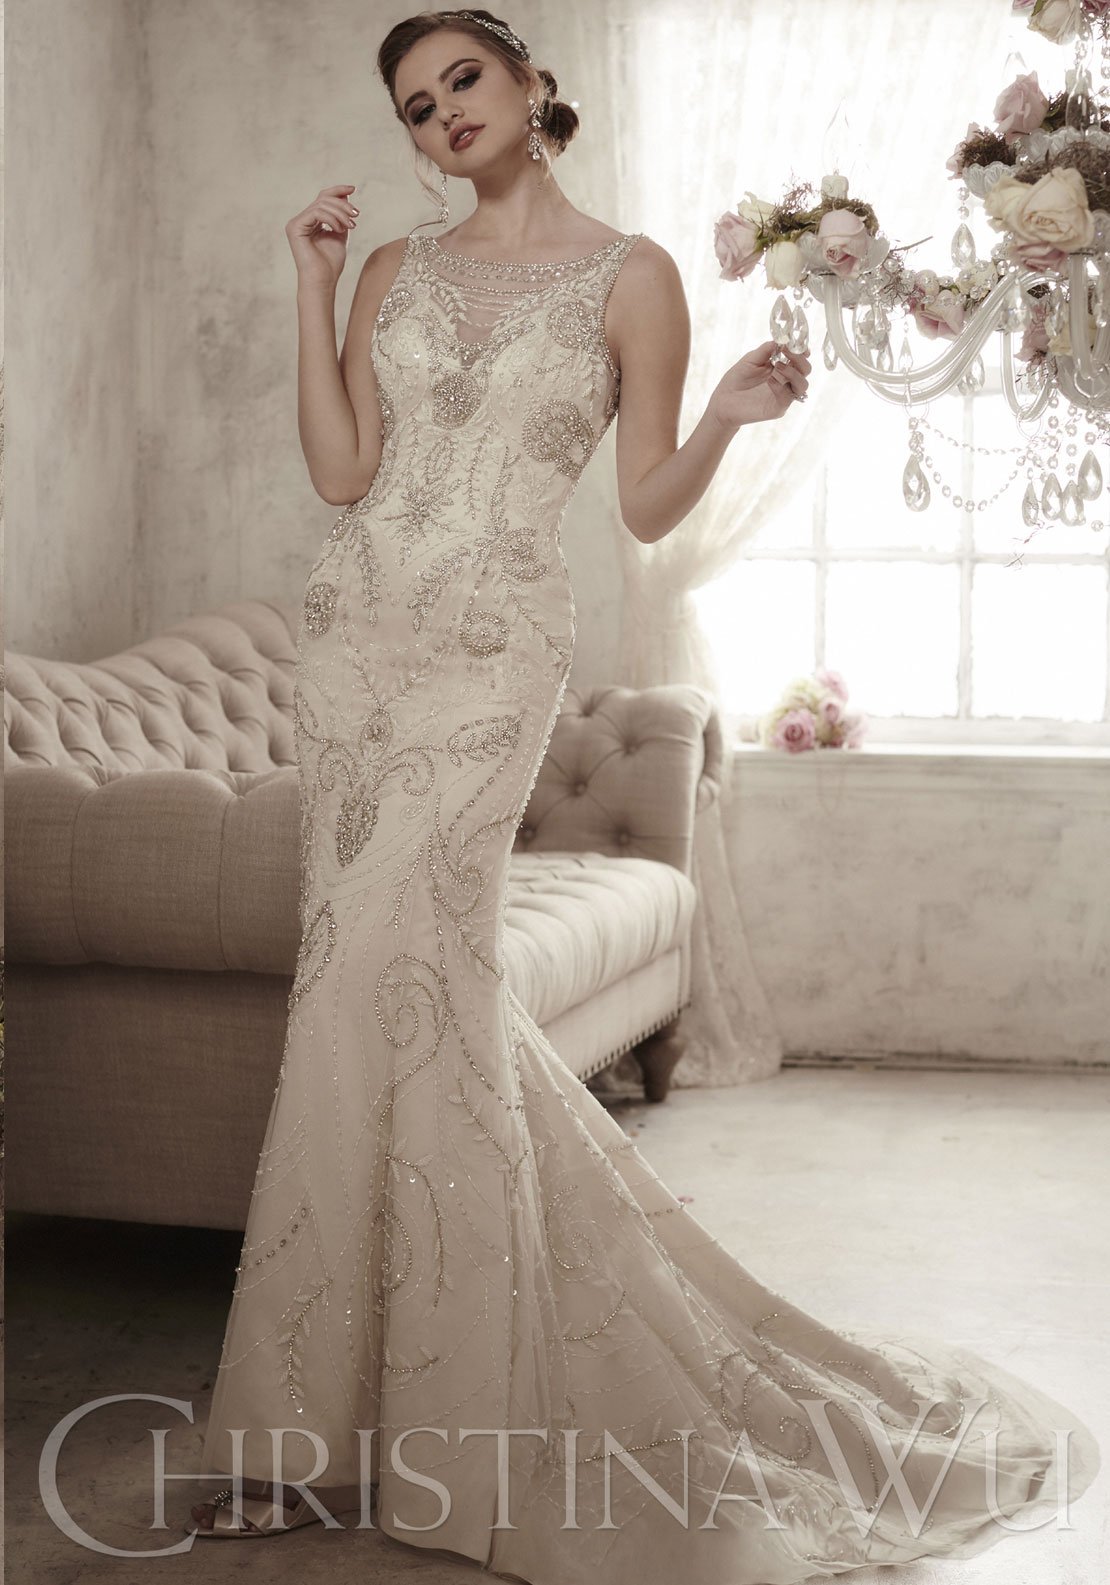 CHRISTINA WU BRIDAL 10S IVO